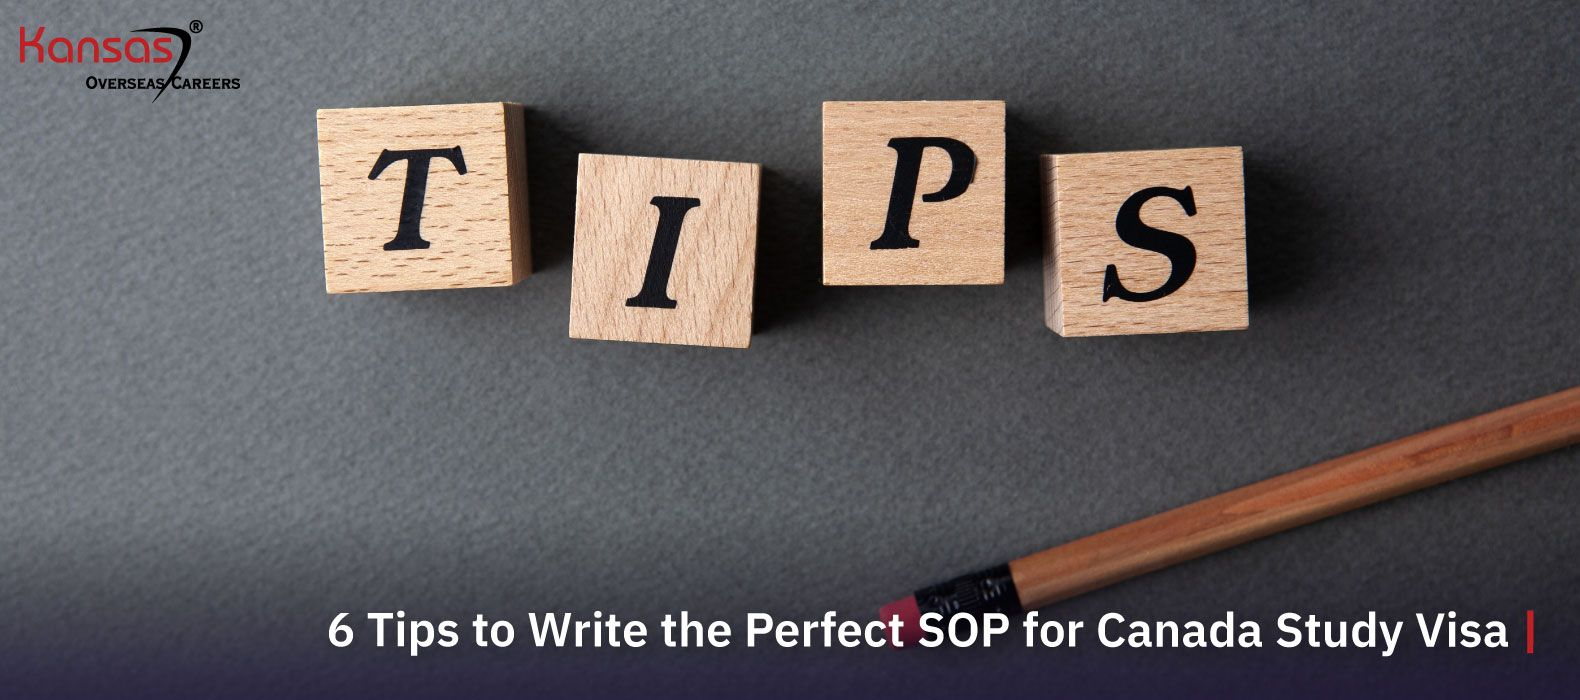 6-Tips-to-Write-the-Perfect-SOP-for-Canada-Study-Visa